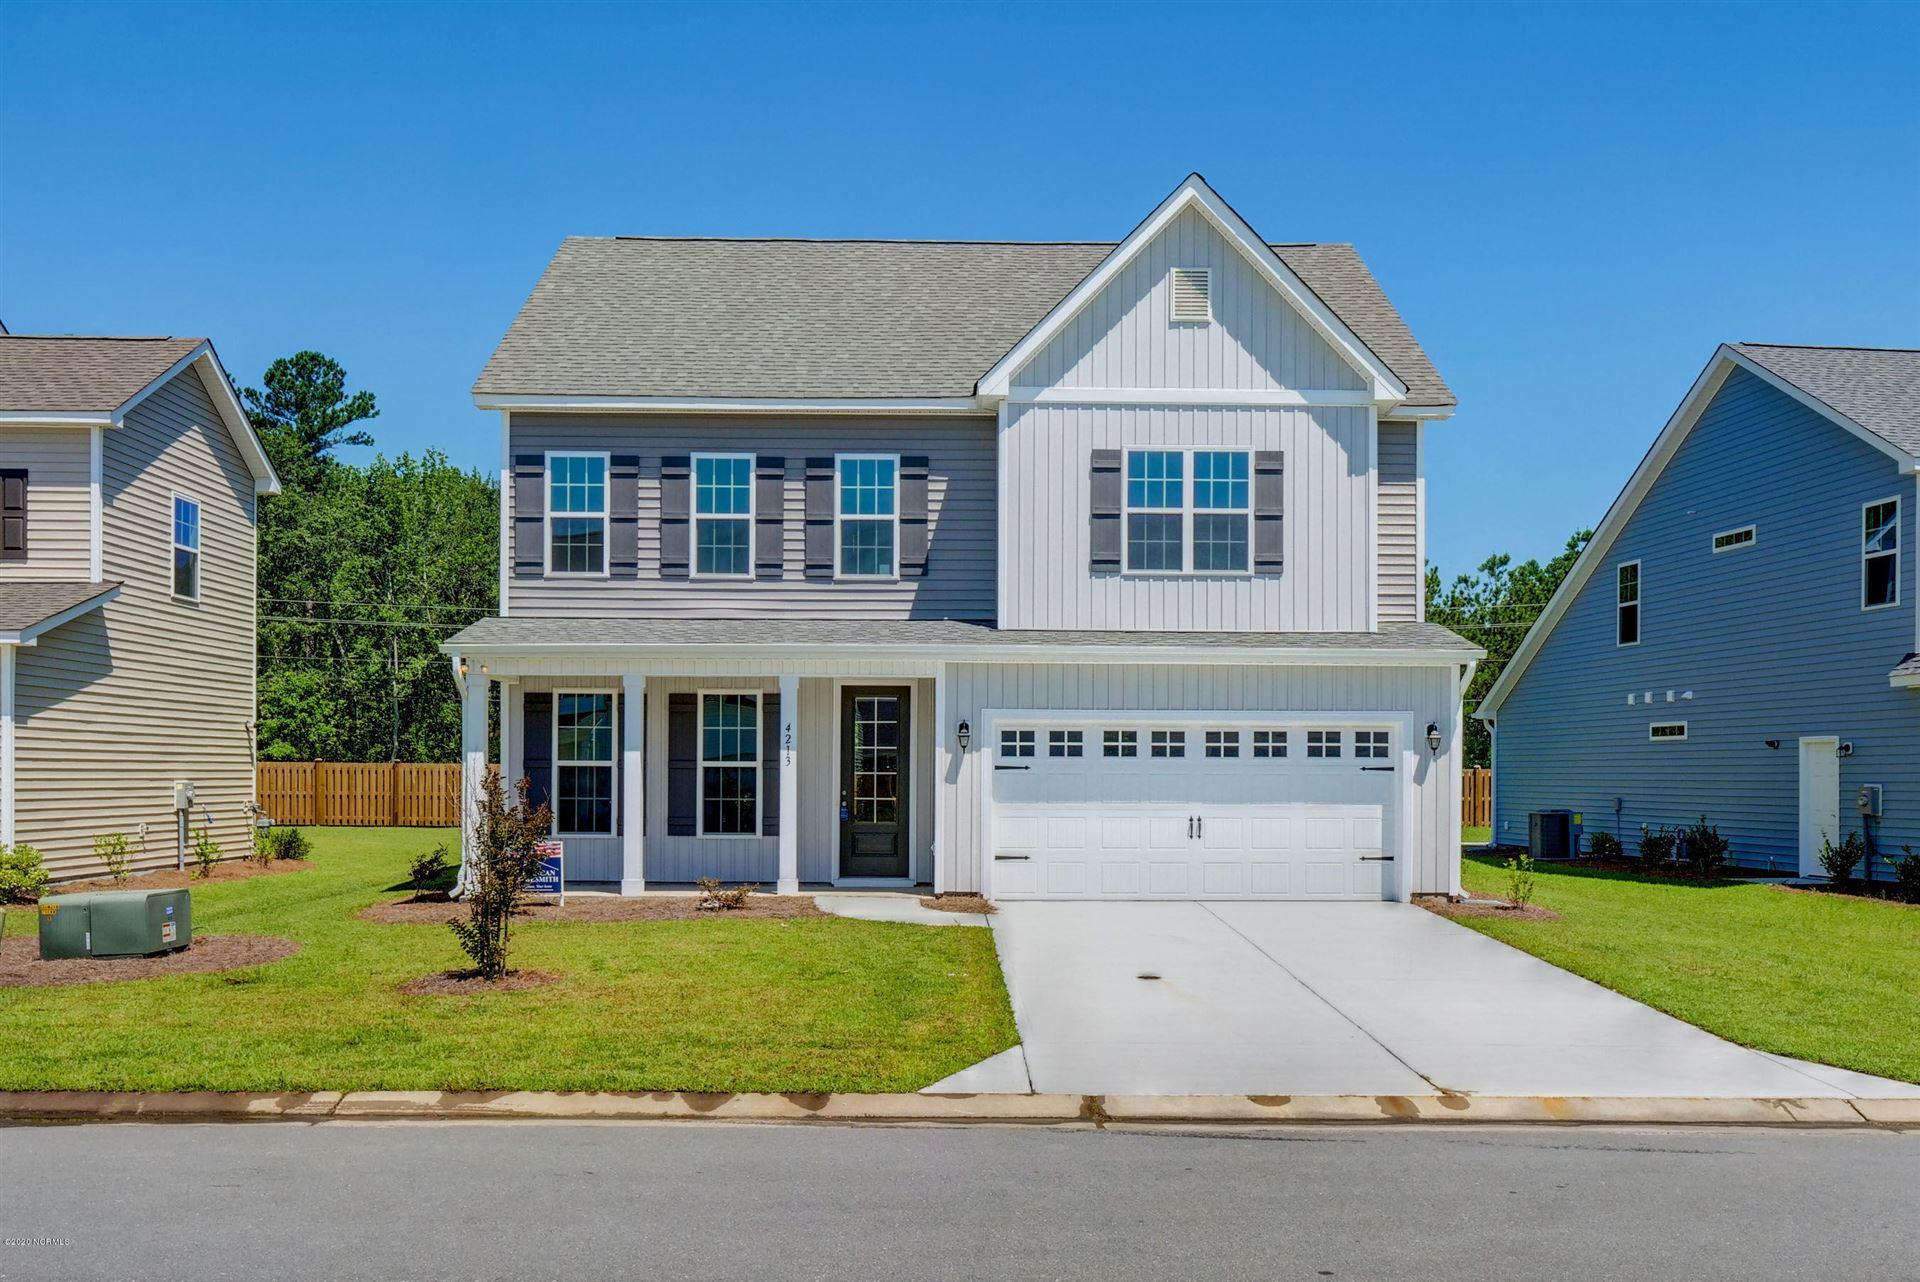 3709 Stormy Gale Place, Castle Hayne, NC 28429 - MLS#: 100227721